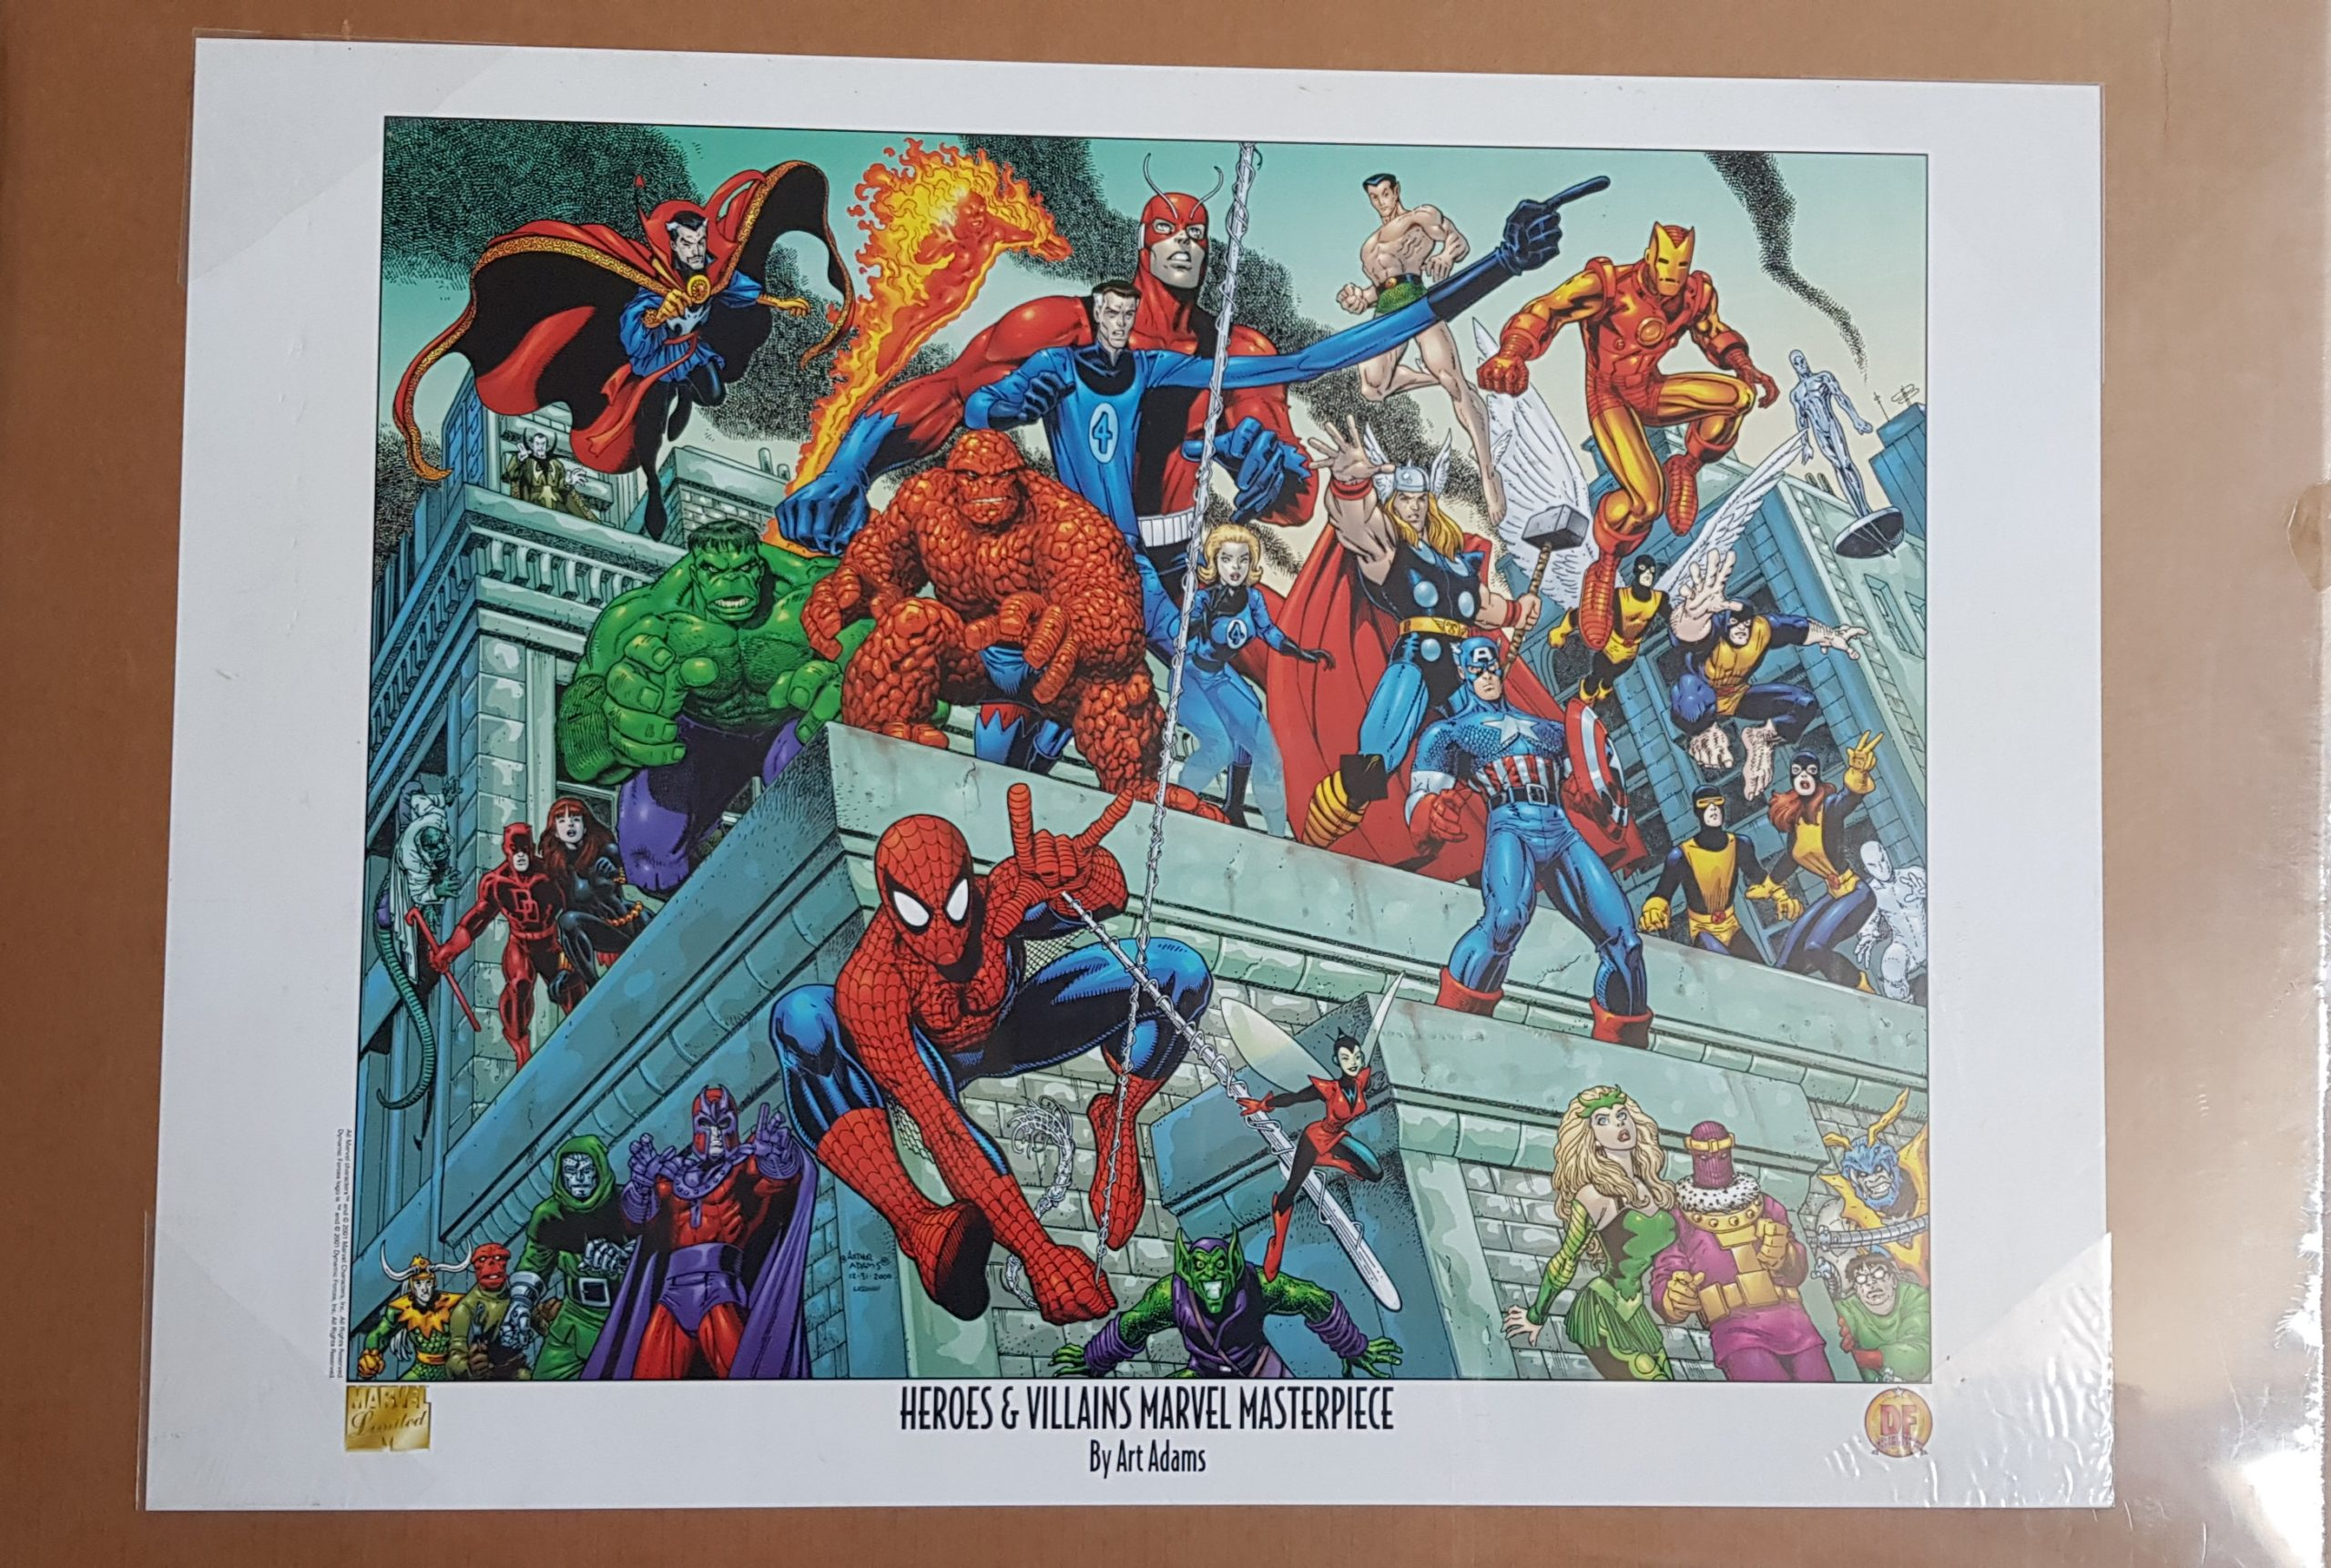 HEROES & VILLAINS MARVEL MASTERPIECE! POSTER